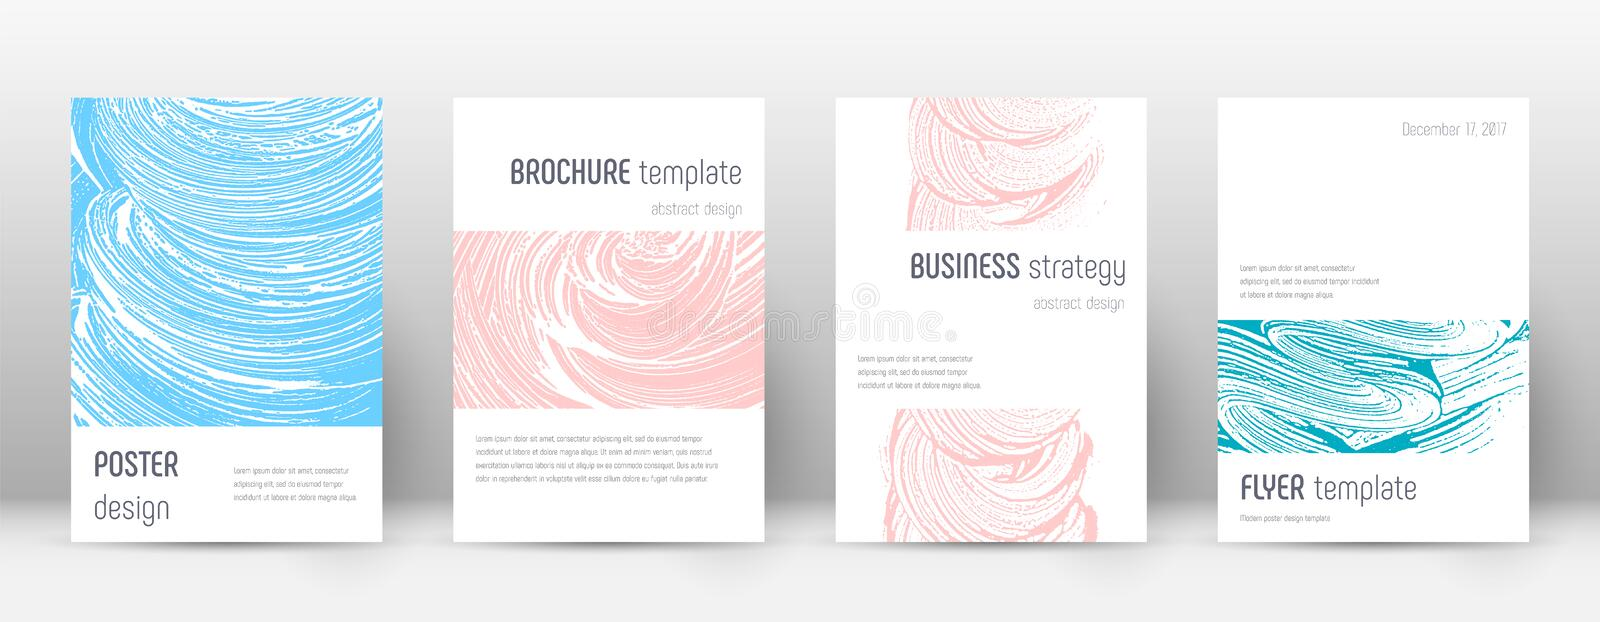 Cover page design template. Minimalistic brochure. Layout. Classy trendy abstract cover page. Pink and blue grunge texture background. Magnetic poster vector illustration